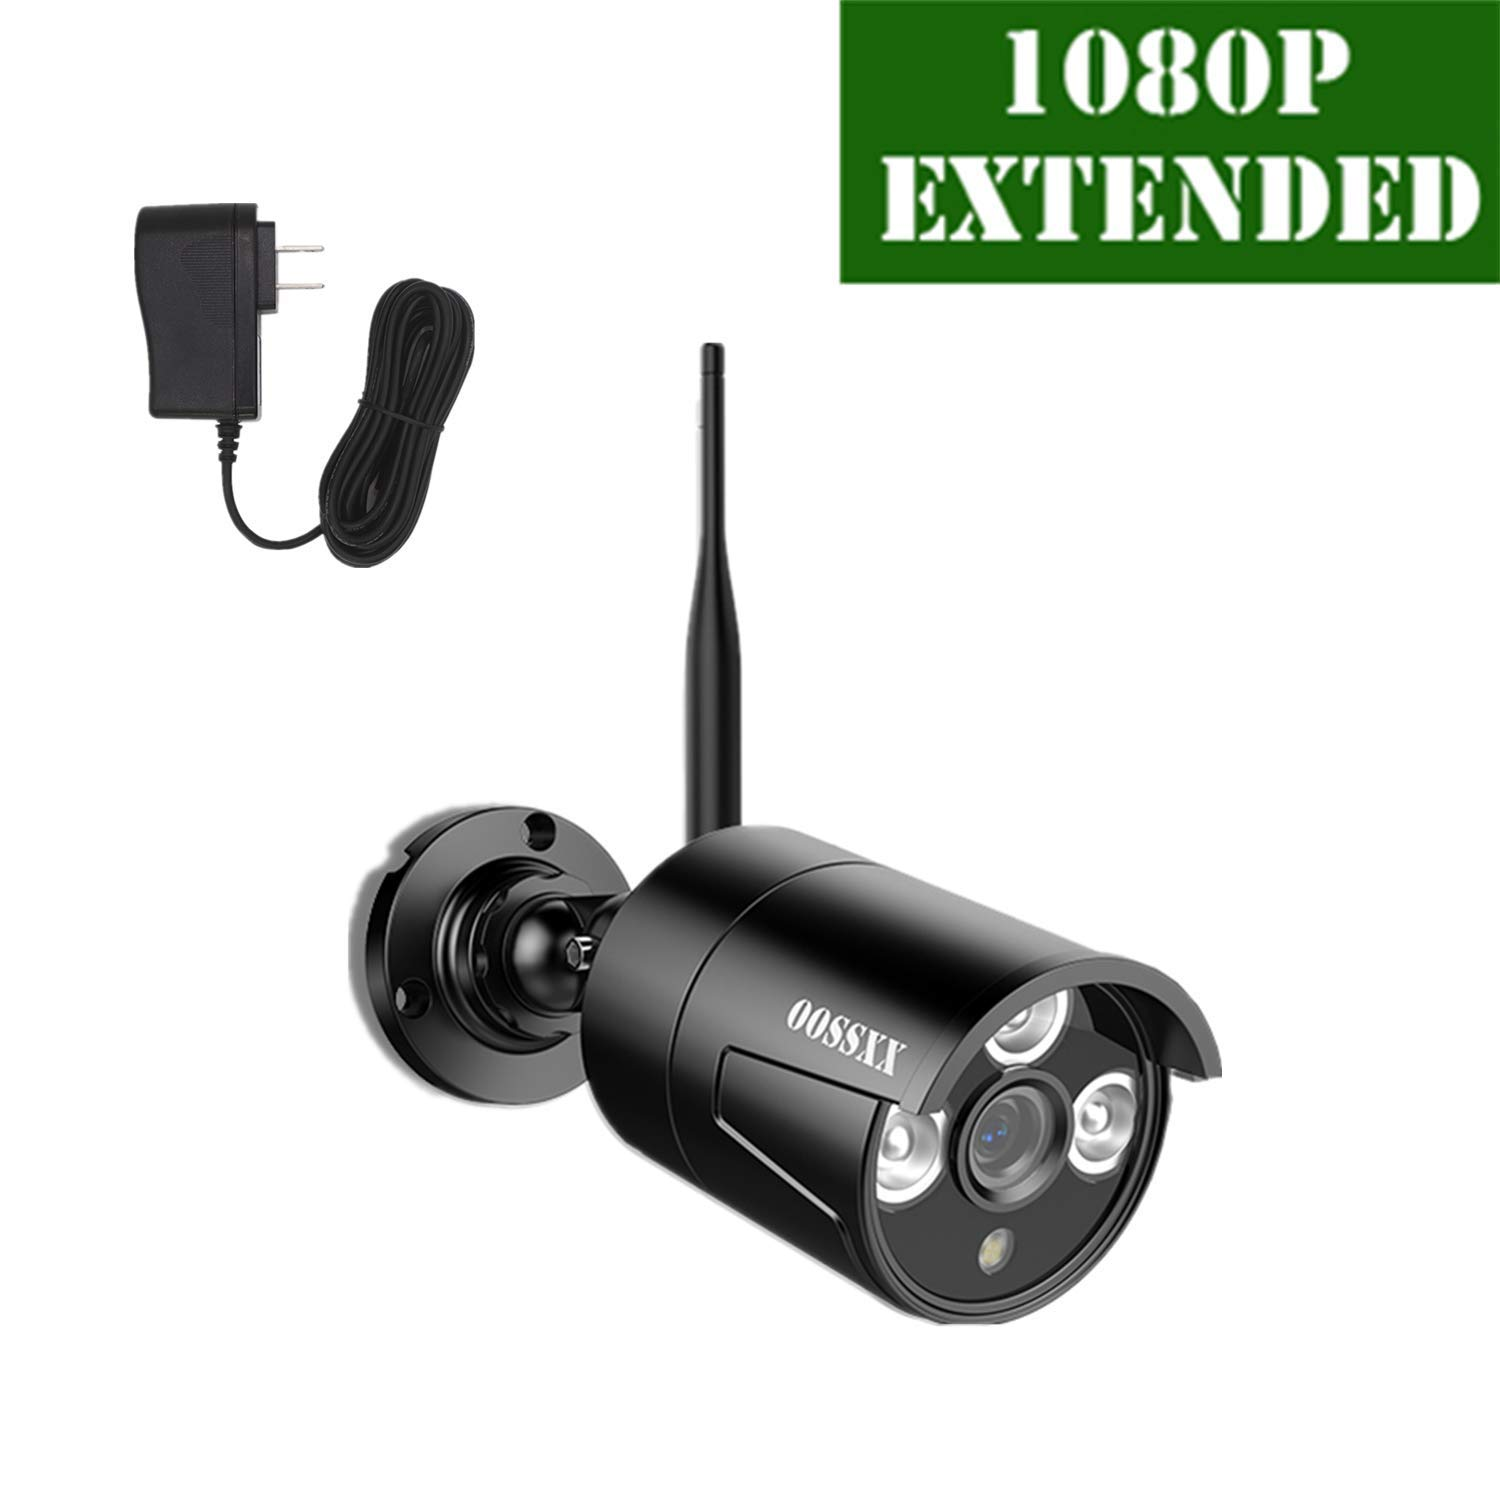 OOSSXX Outdoor Indoor Video Surveillance Security Waterproof Black Camera,Home IP 1080P Black Camera,Night Vision,just Extend for OOSSXX WiFi Kits